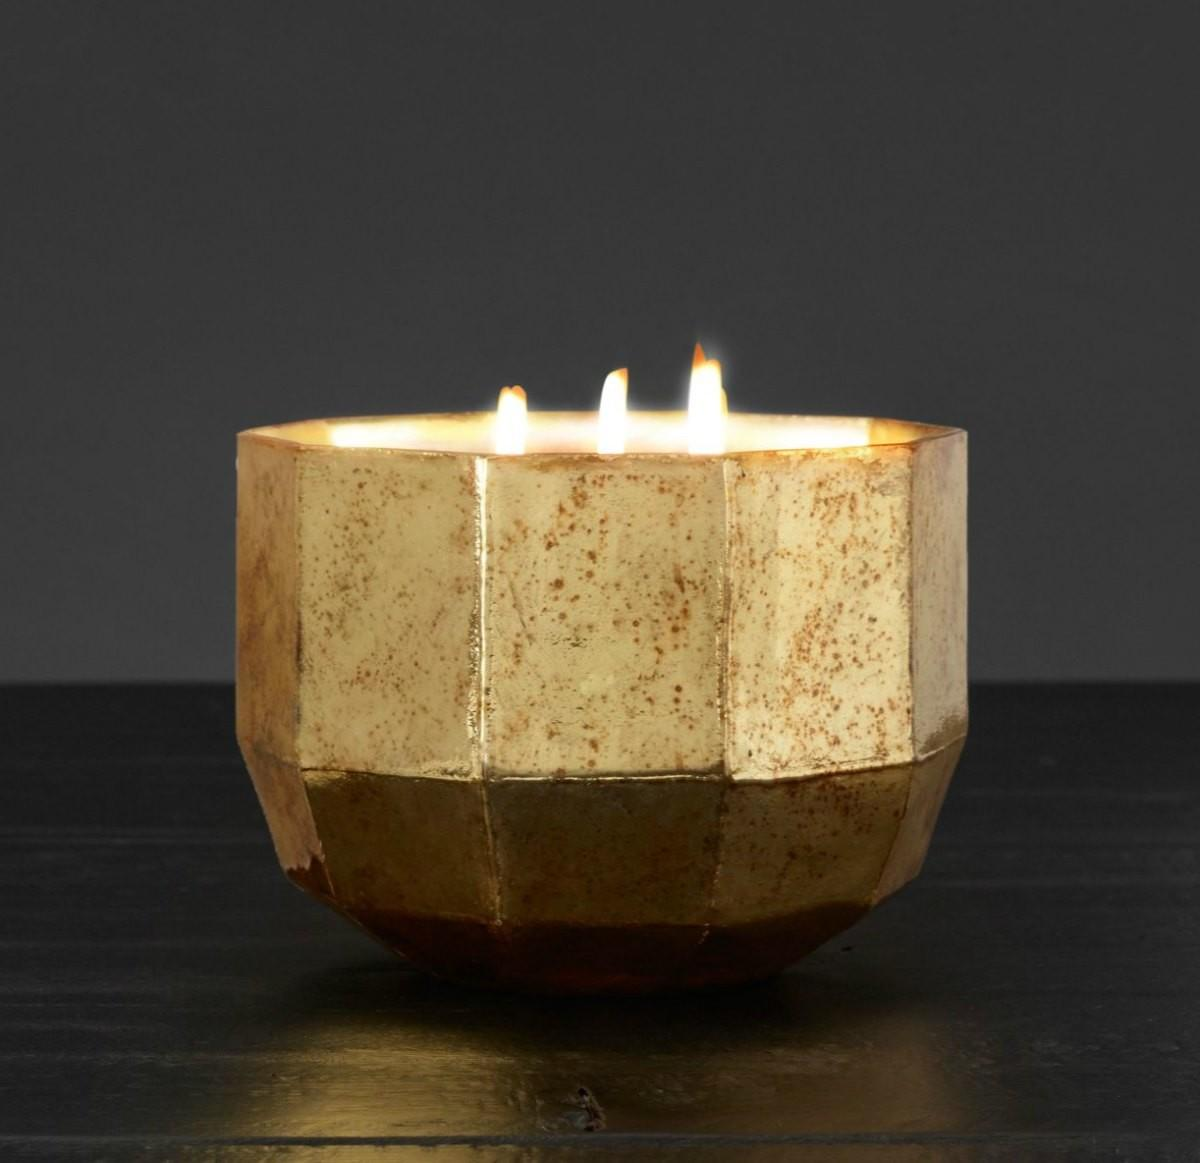 Warm Glow Candles Containers Cozy Accessories